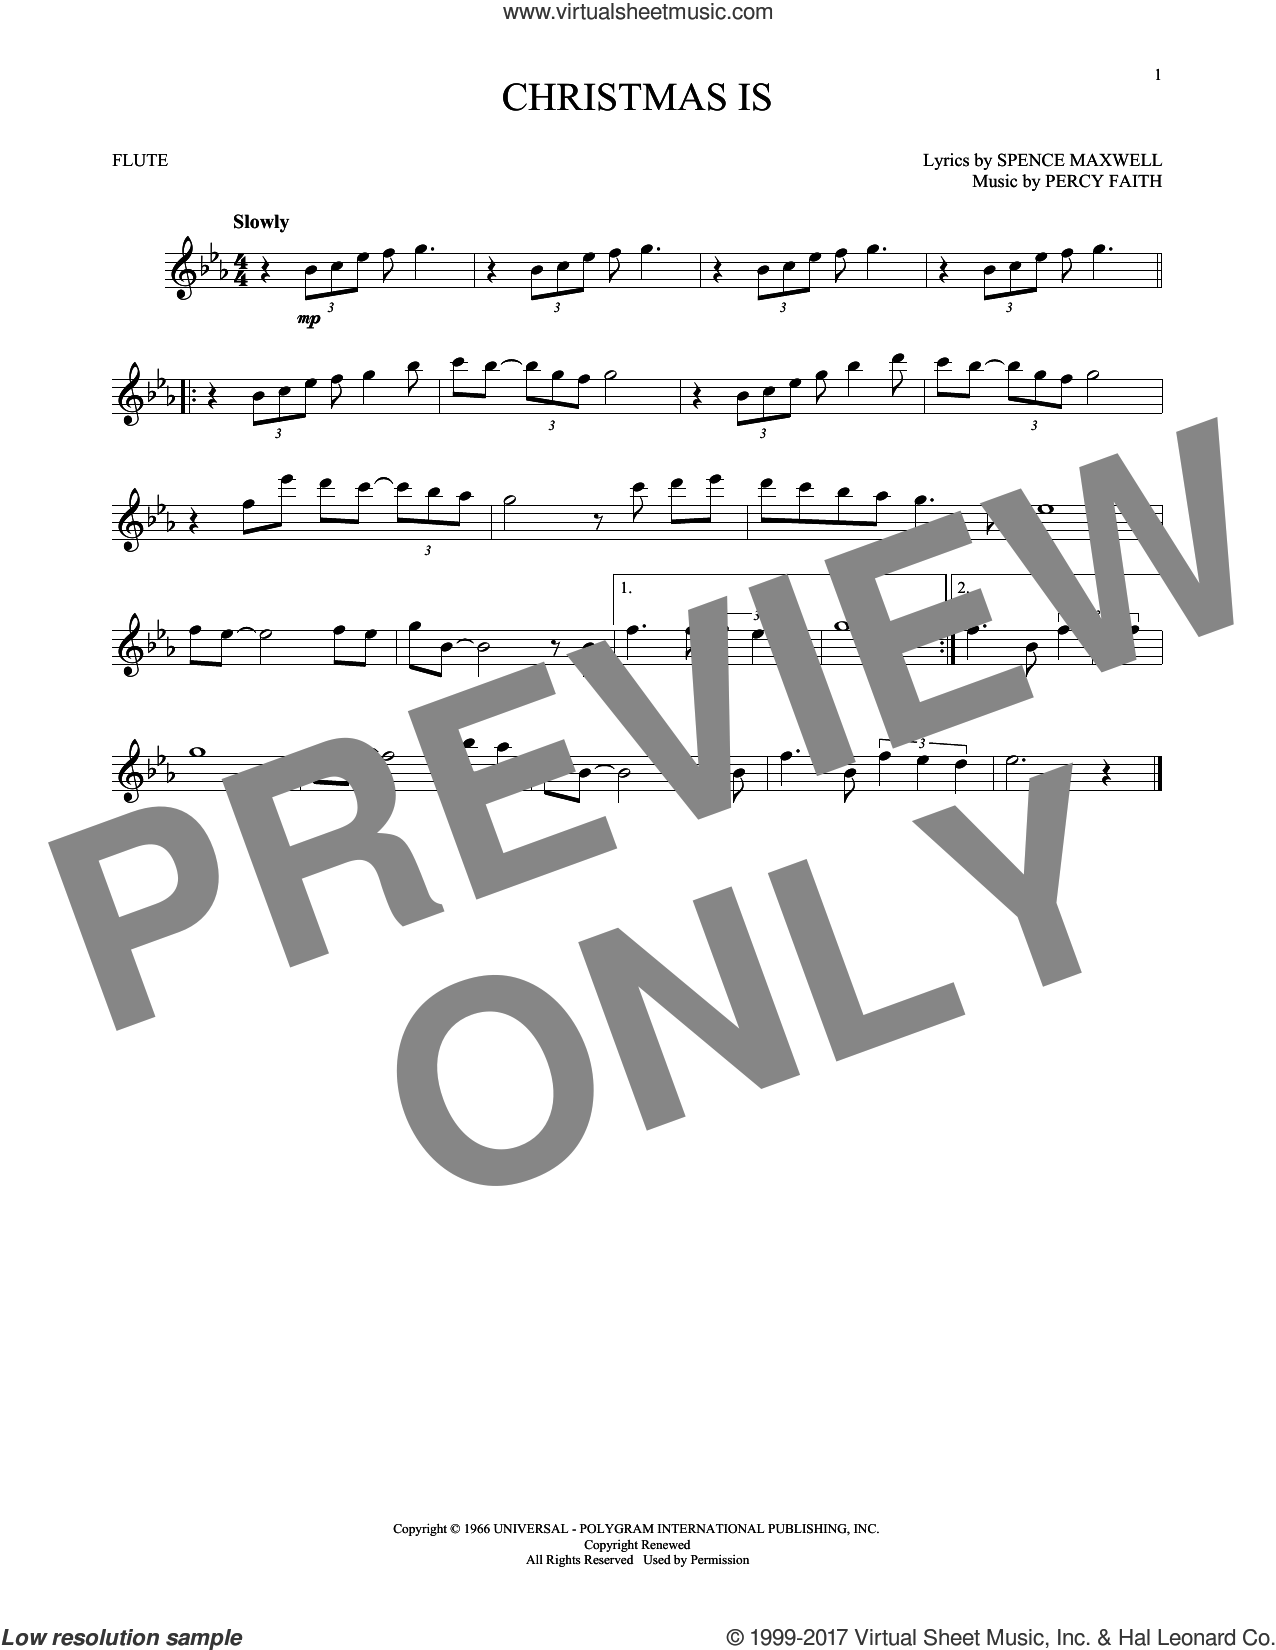 Christmas Is sheet music for flute solo by Percy Faith and Spence Maxwell, intermediate skill level